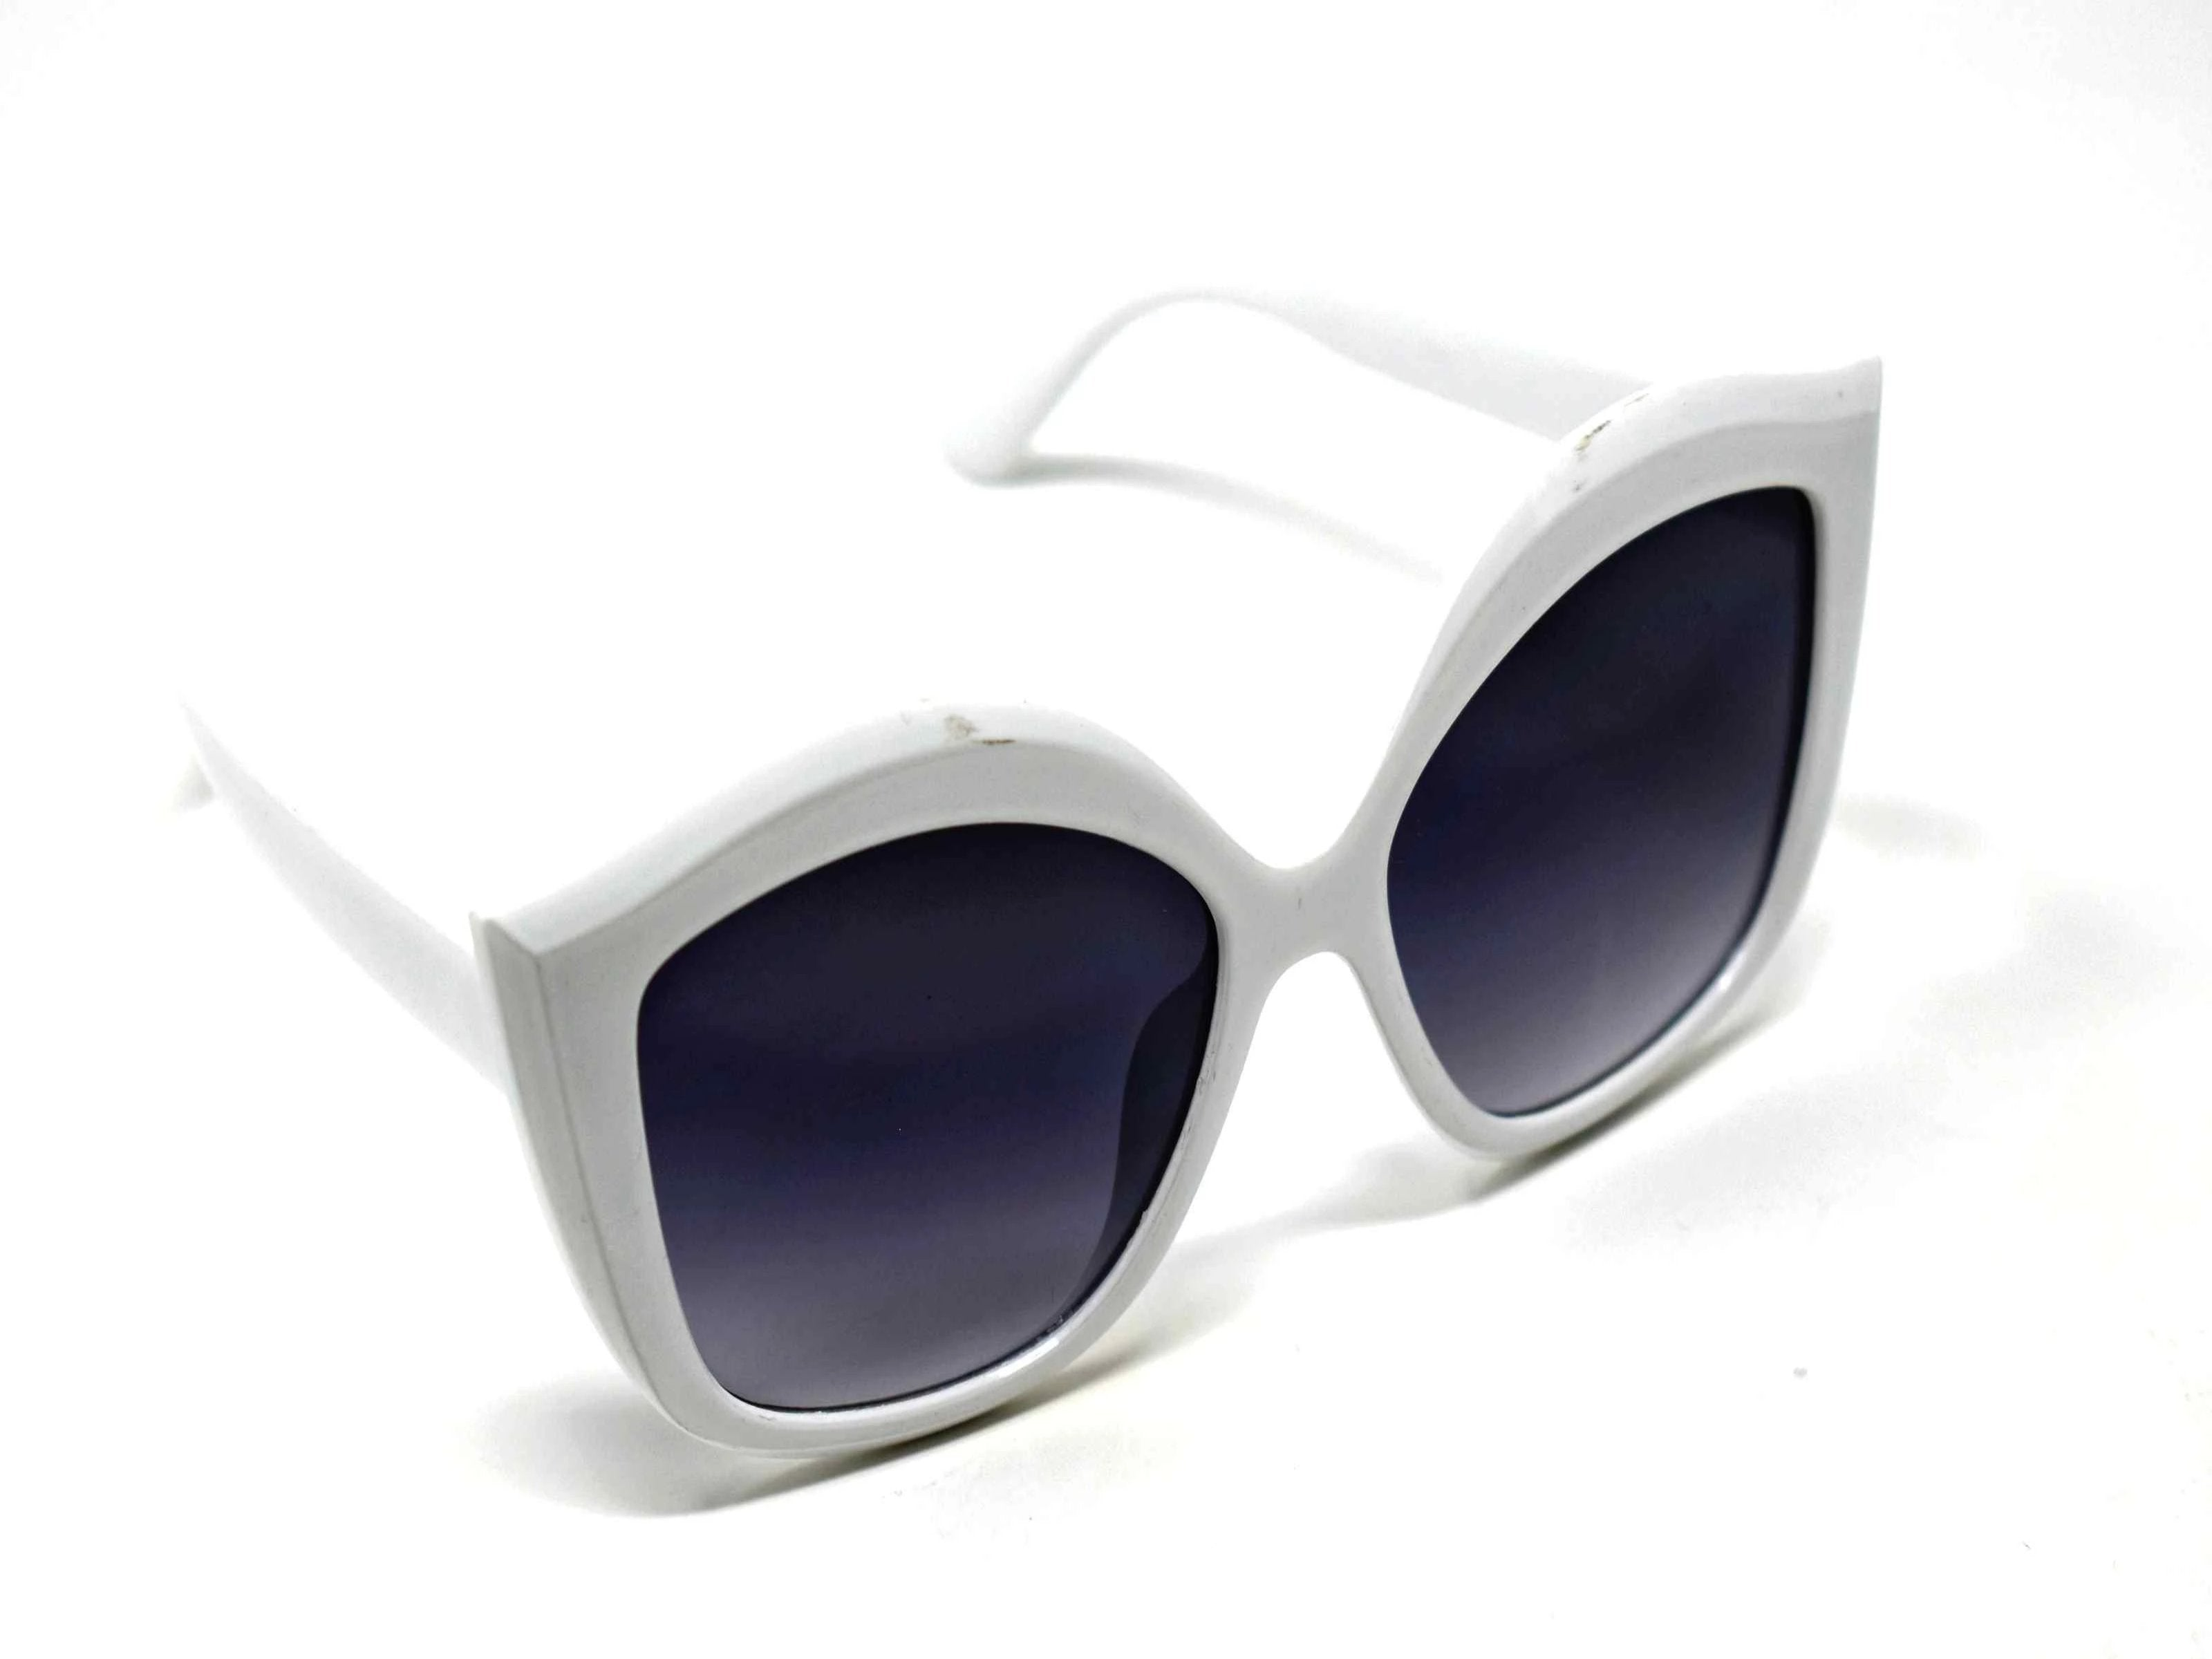 Retro glam has come again with our Petal white cat eye frame sunglasses with a black lens.